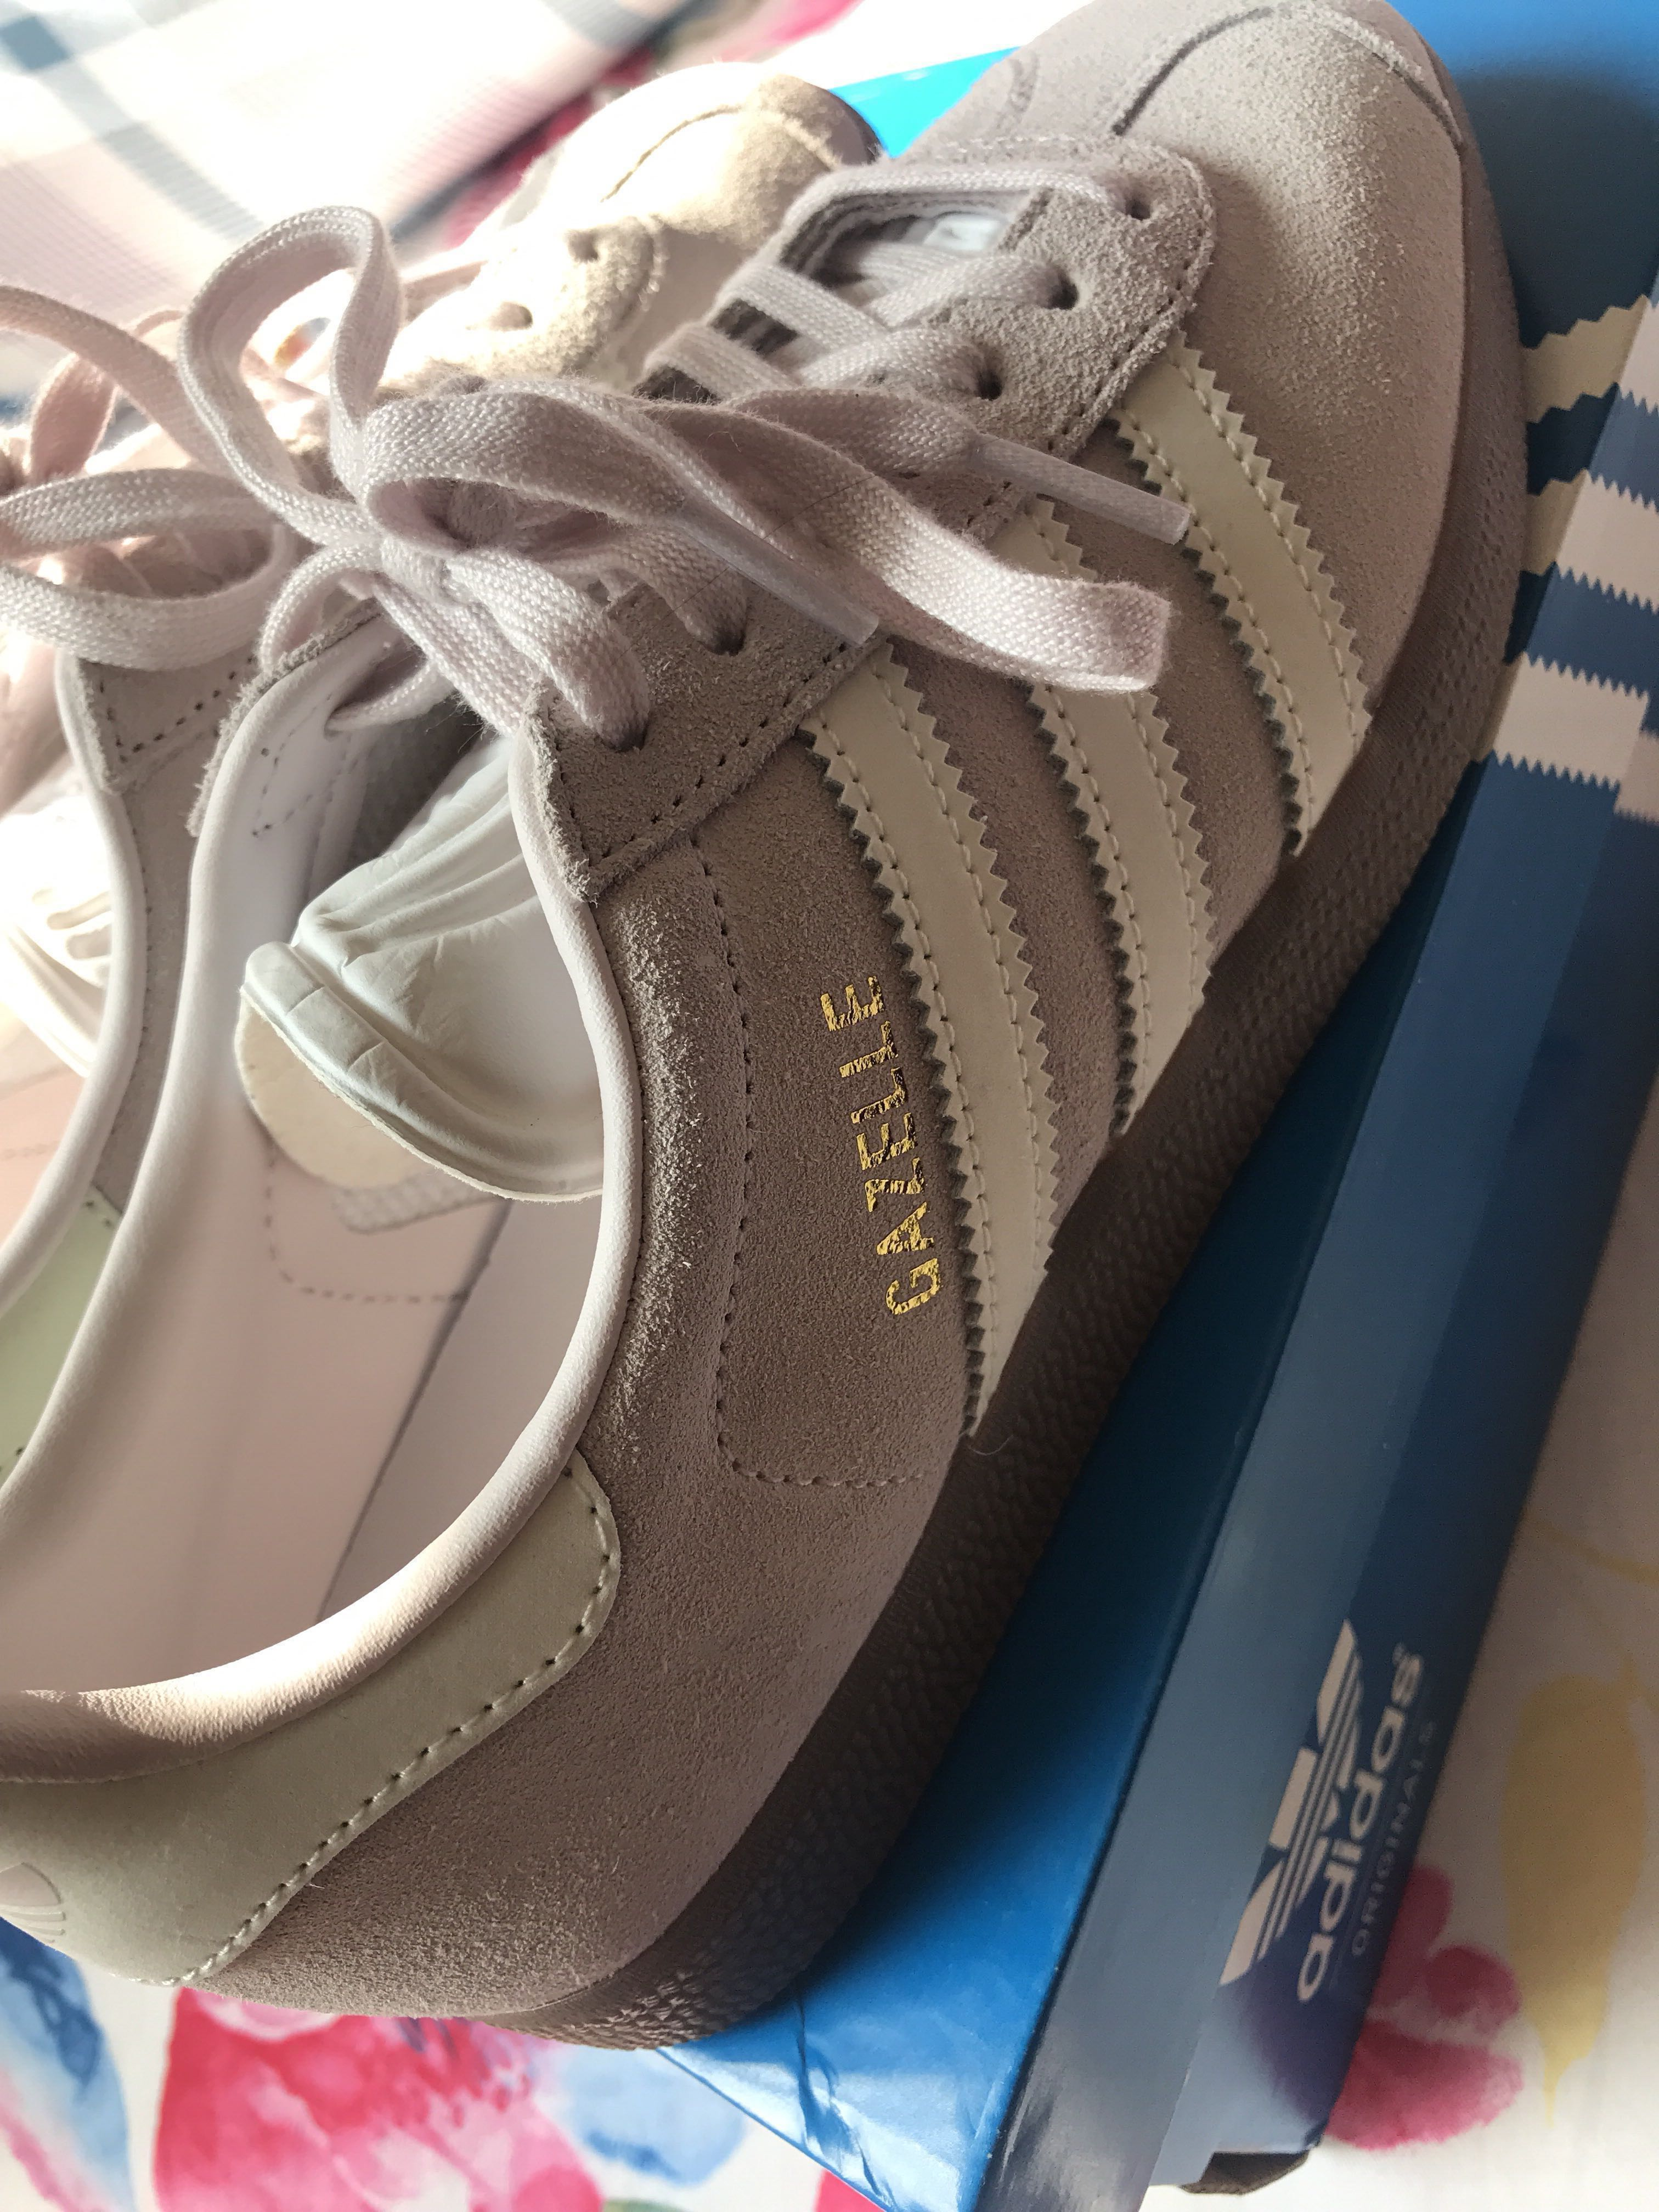 release date f8c89 0f96c Adidas Originals Gazelle Trainers In Lilac with dark Gum Sole 波鞋平 ...